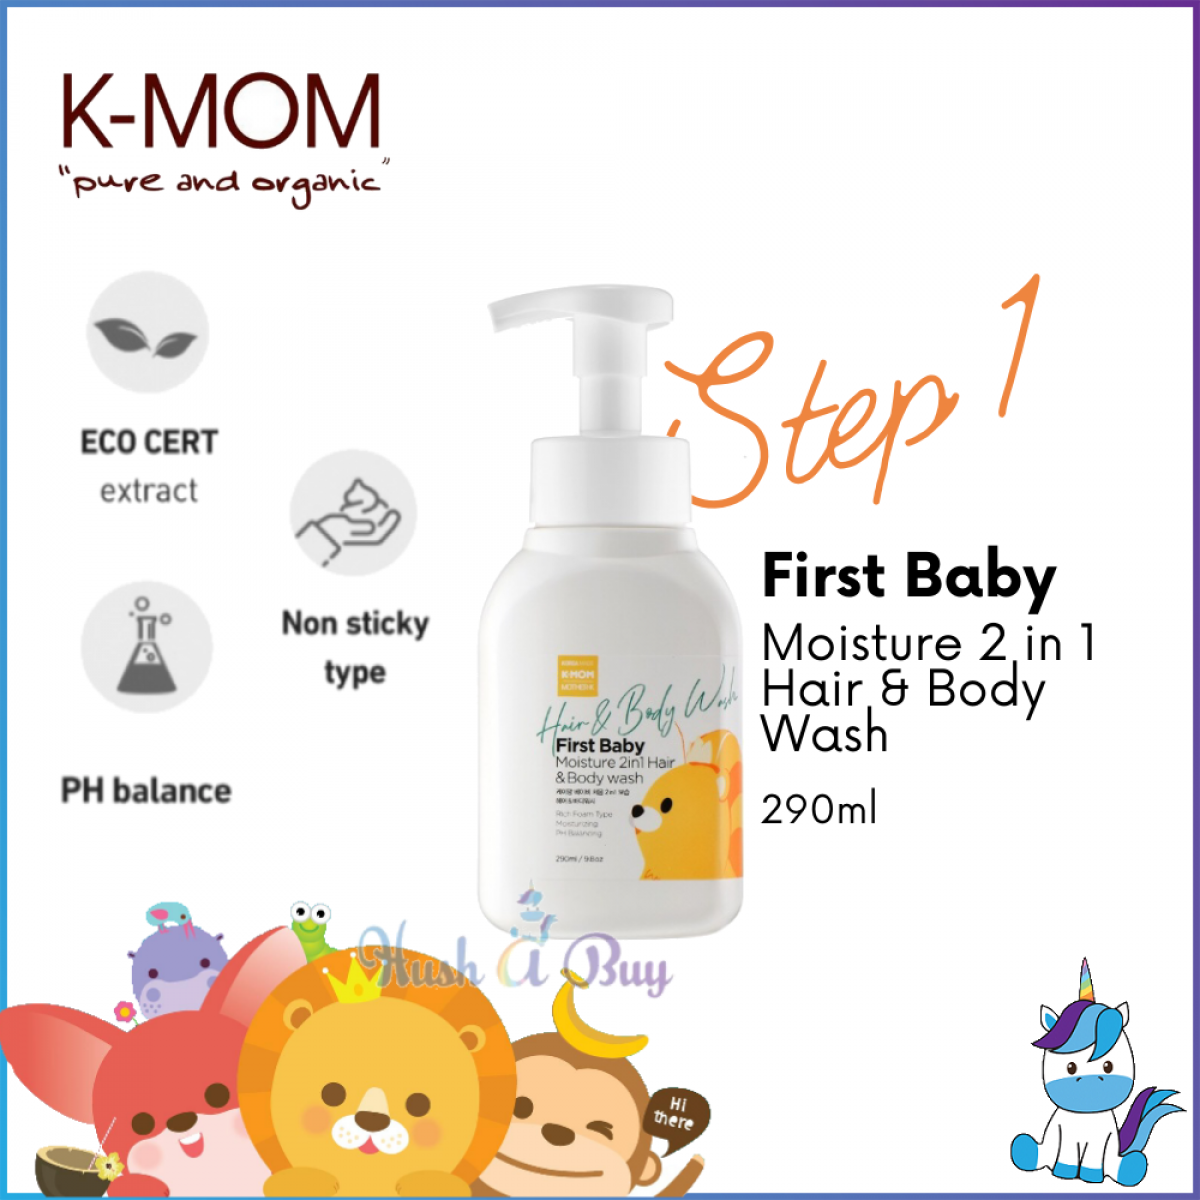 K-Mom First Baby Moisture 2 in 1 Hair and Body Wash Foam 290ml - STEP 1